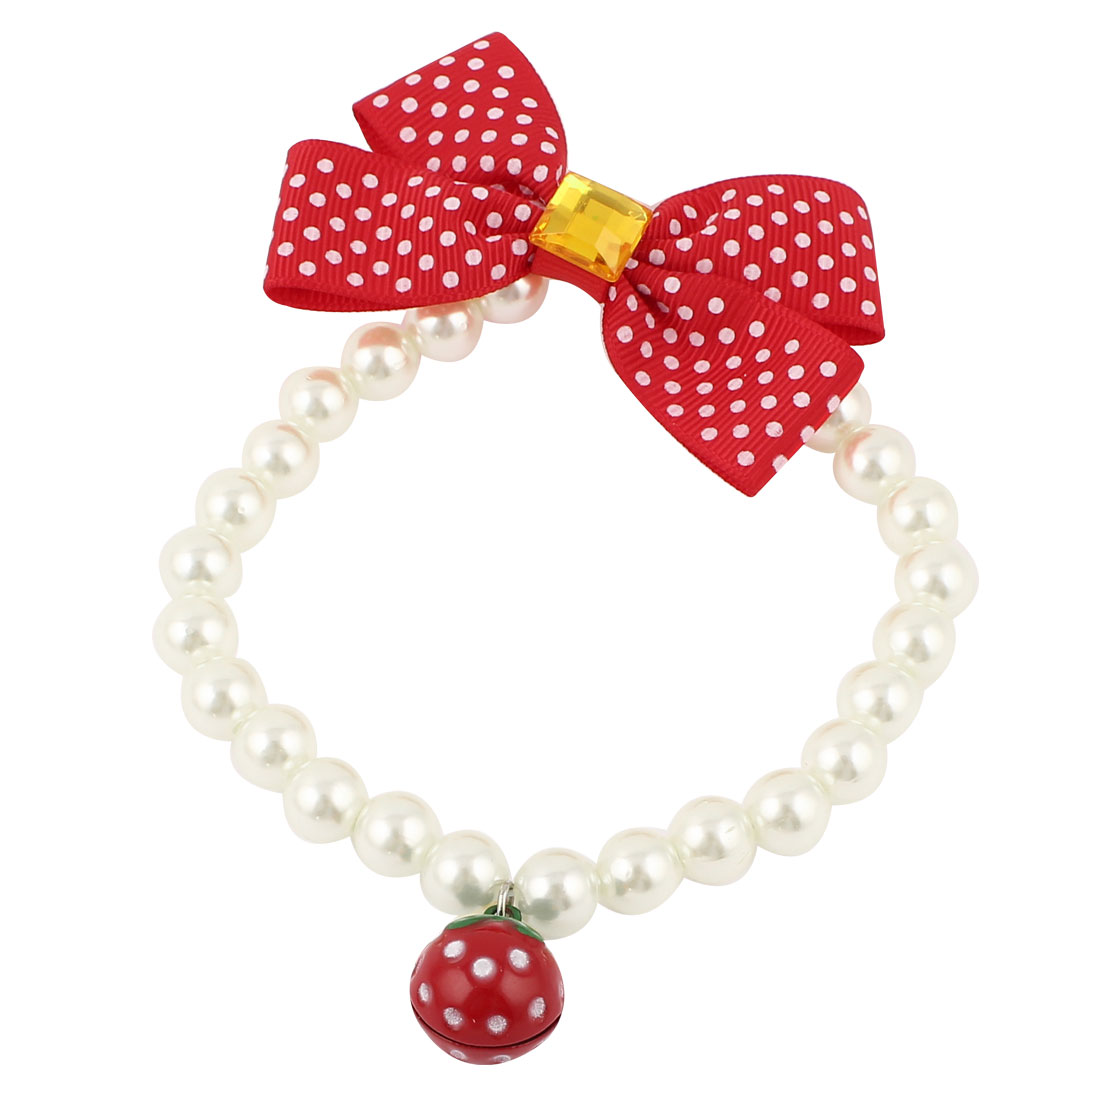 Metal Bell Pendant Bowtie Accent Pet Dog Plastic Beads Pearls Collar Necklace White Red S